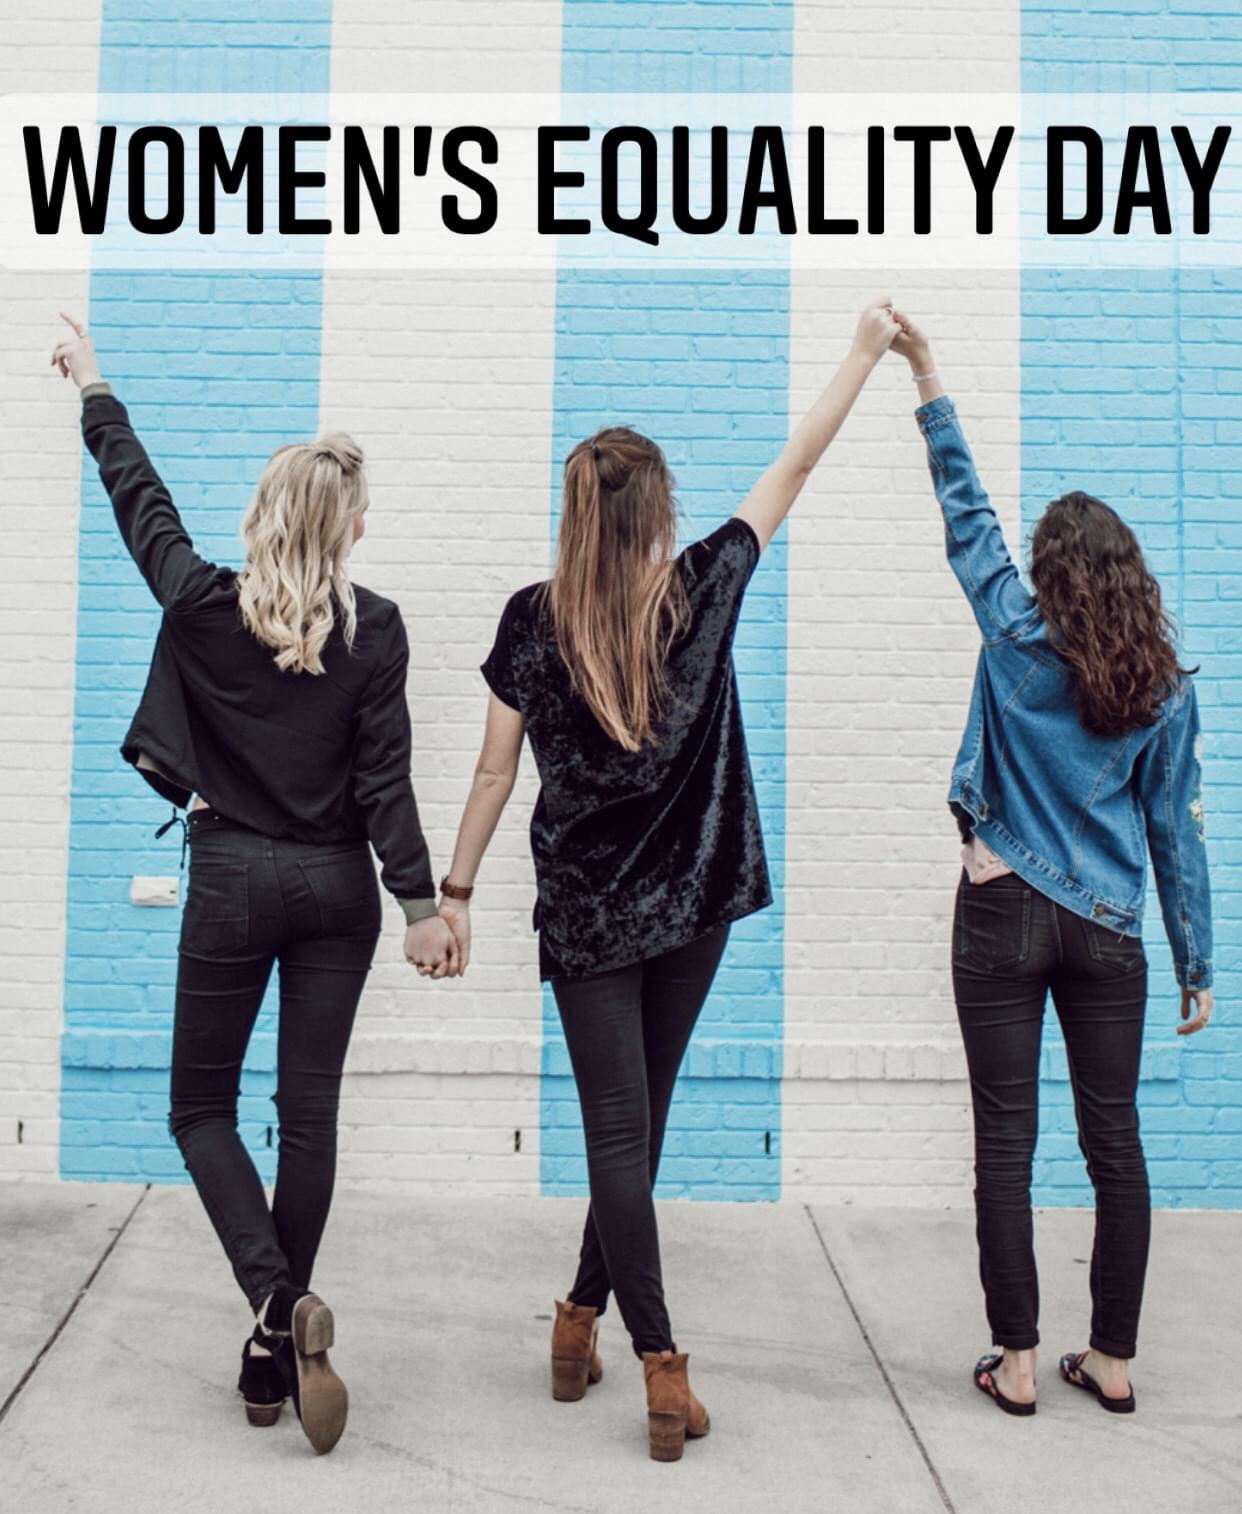 Today is Women's Equality Day